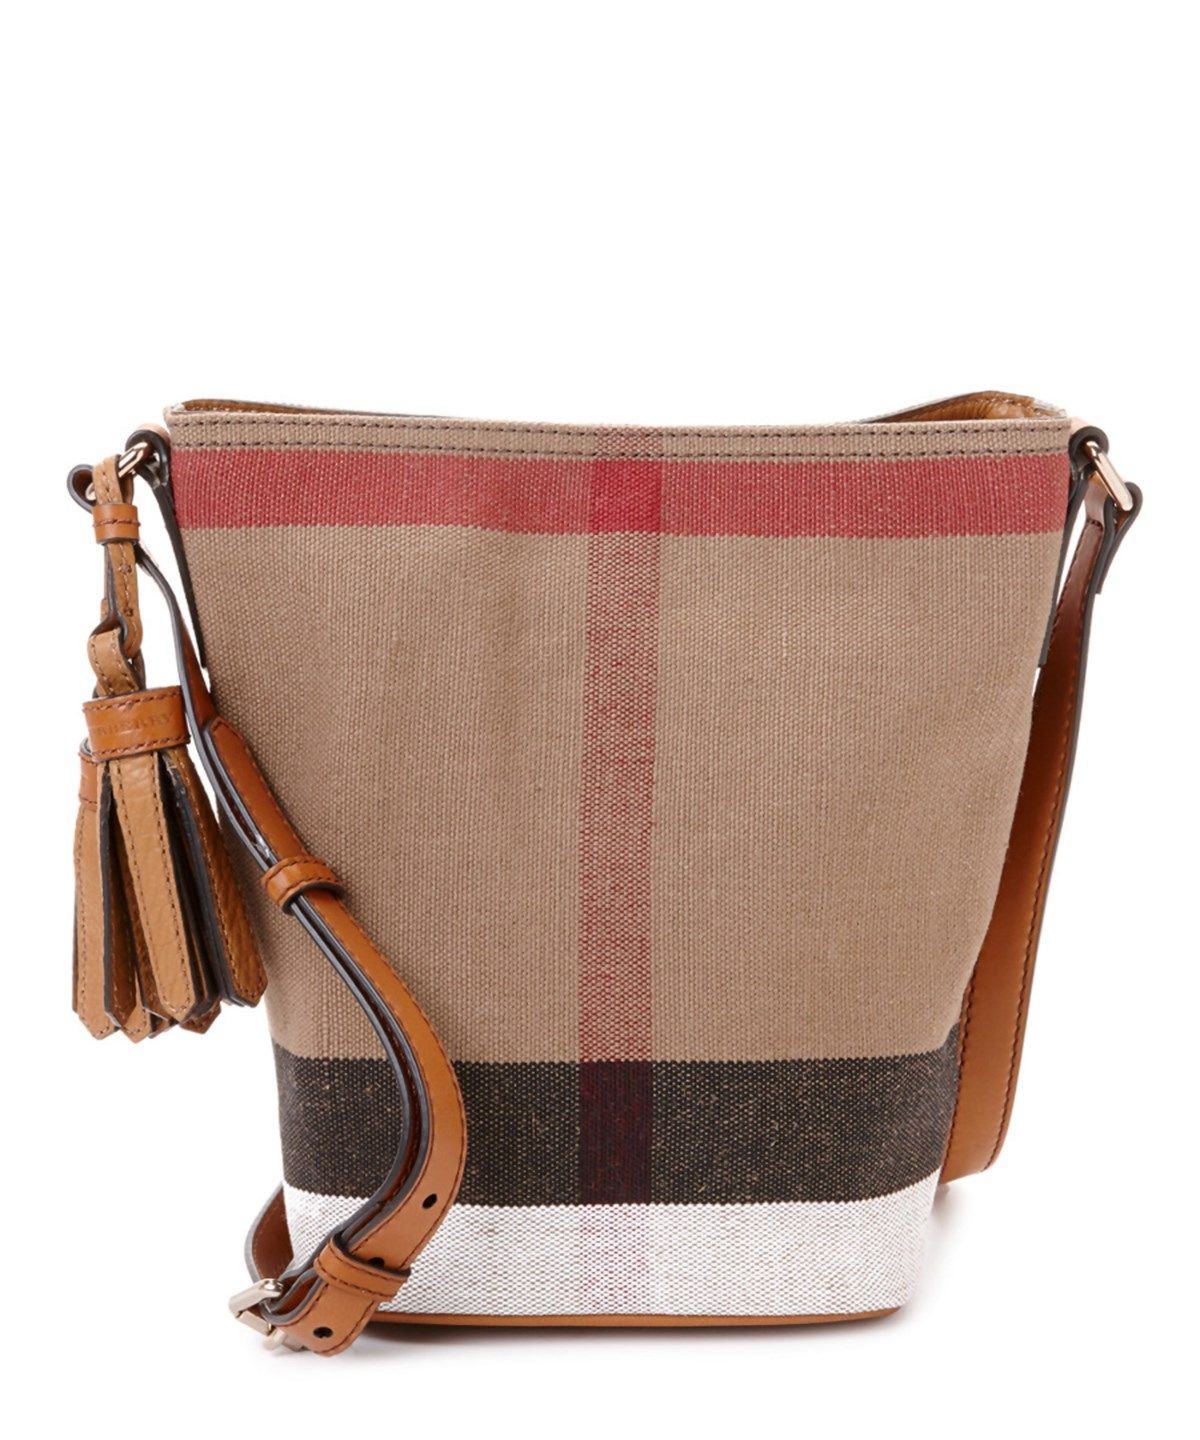 7256766c3162 BURBERRY Burberry Ashby Small Canvas Check  Amp  Leather Bucket Bag .   burberry  bags  shoulder bags  leather  canvas  bucket  lining